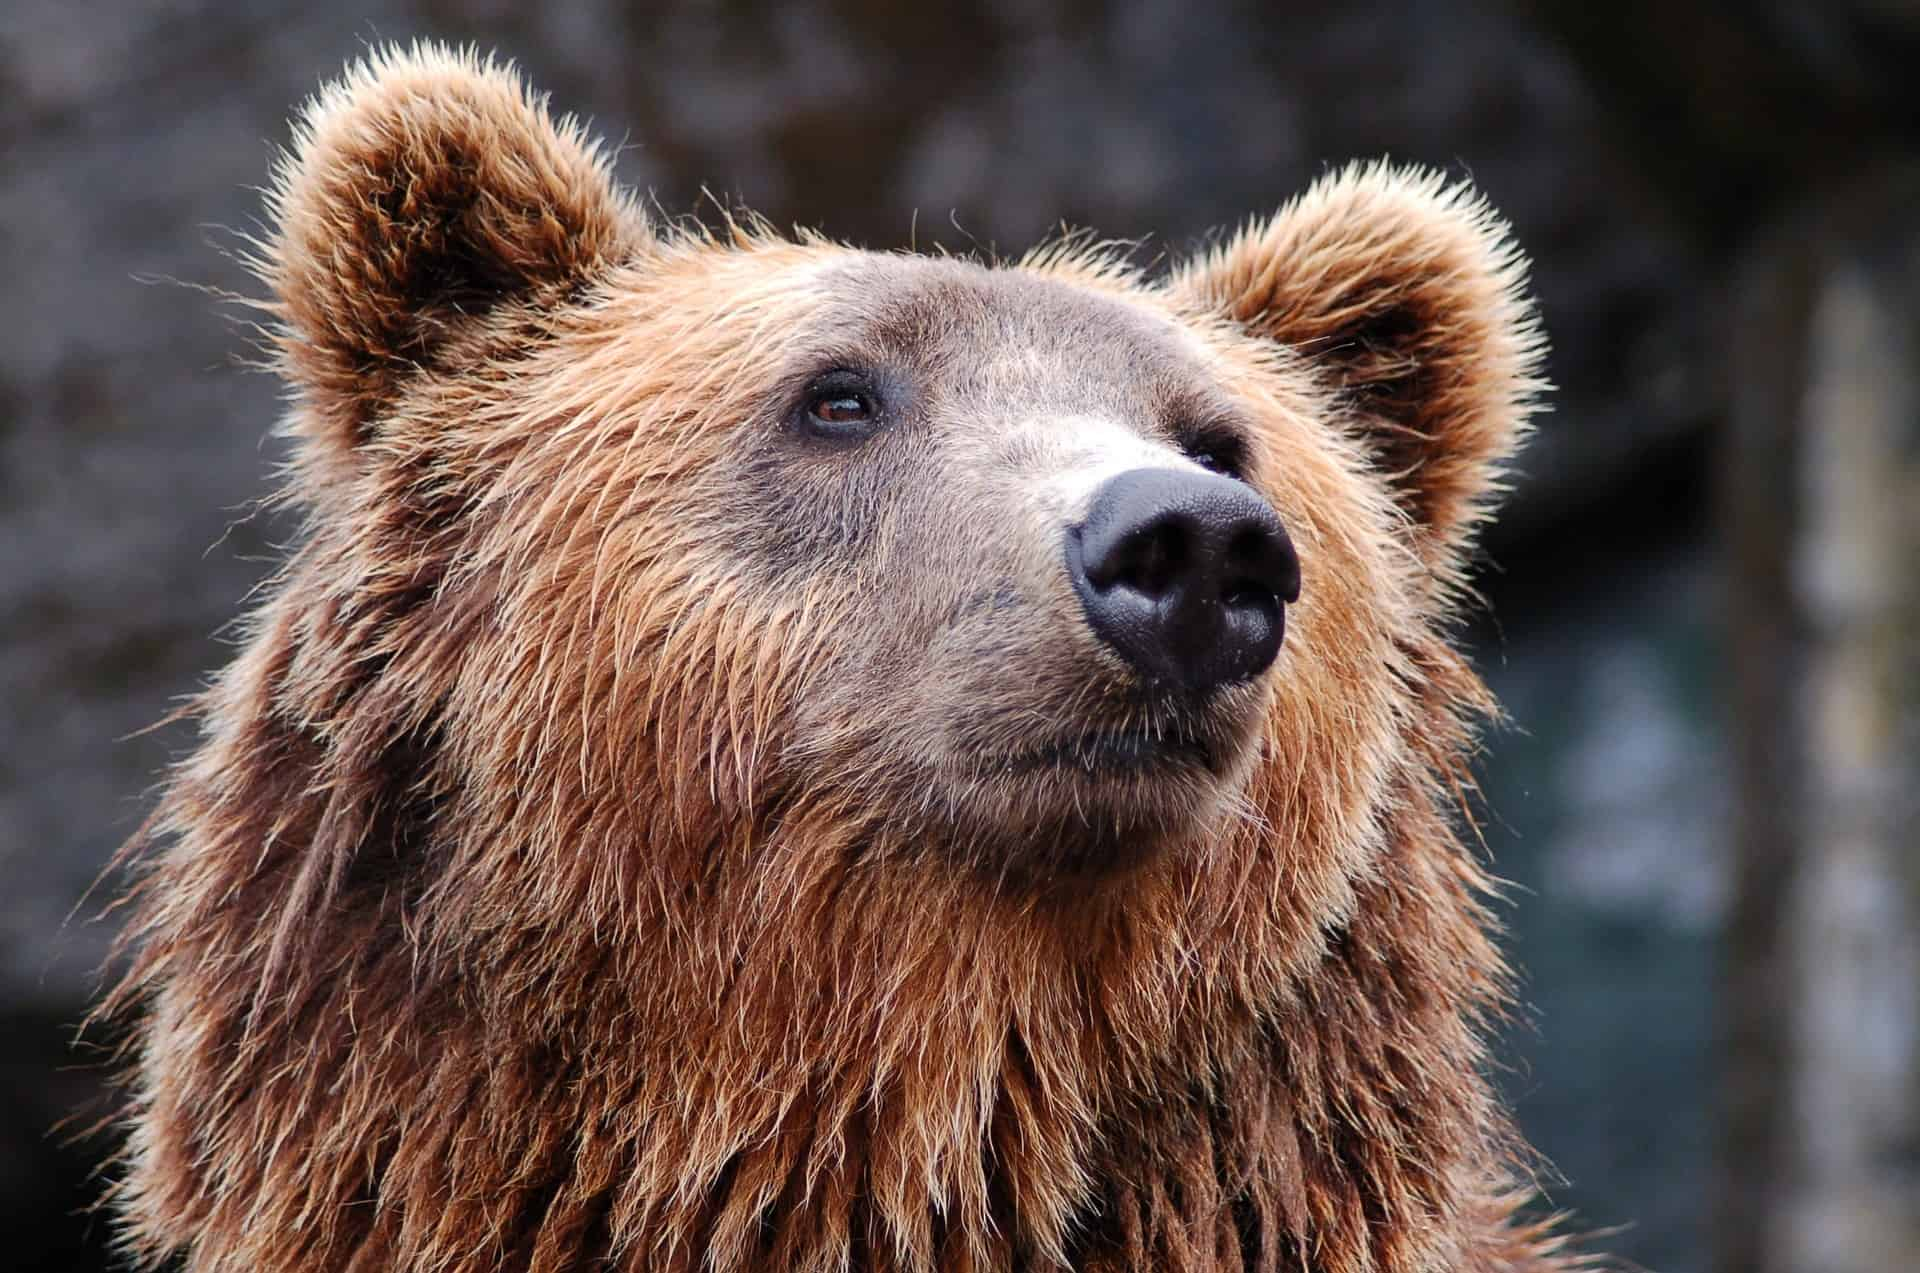 It is estimated that around three thousand brown bears roam in the Swedish forests.